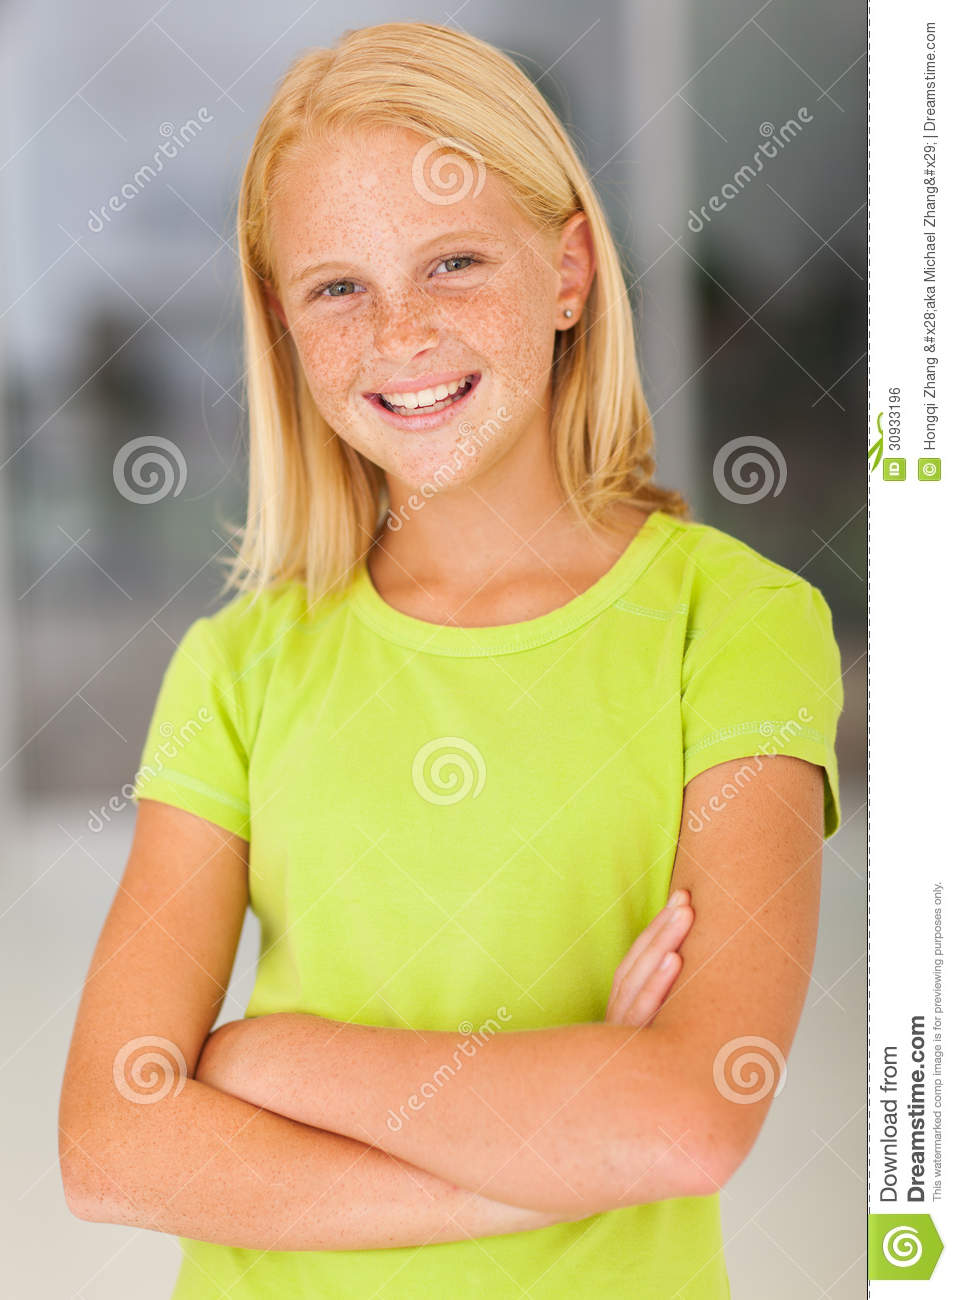 Confident preteen girl portrait with arms crossed.